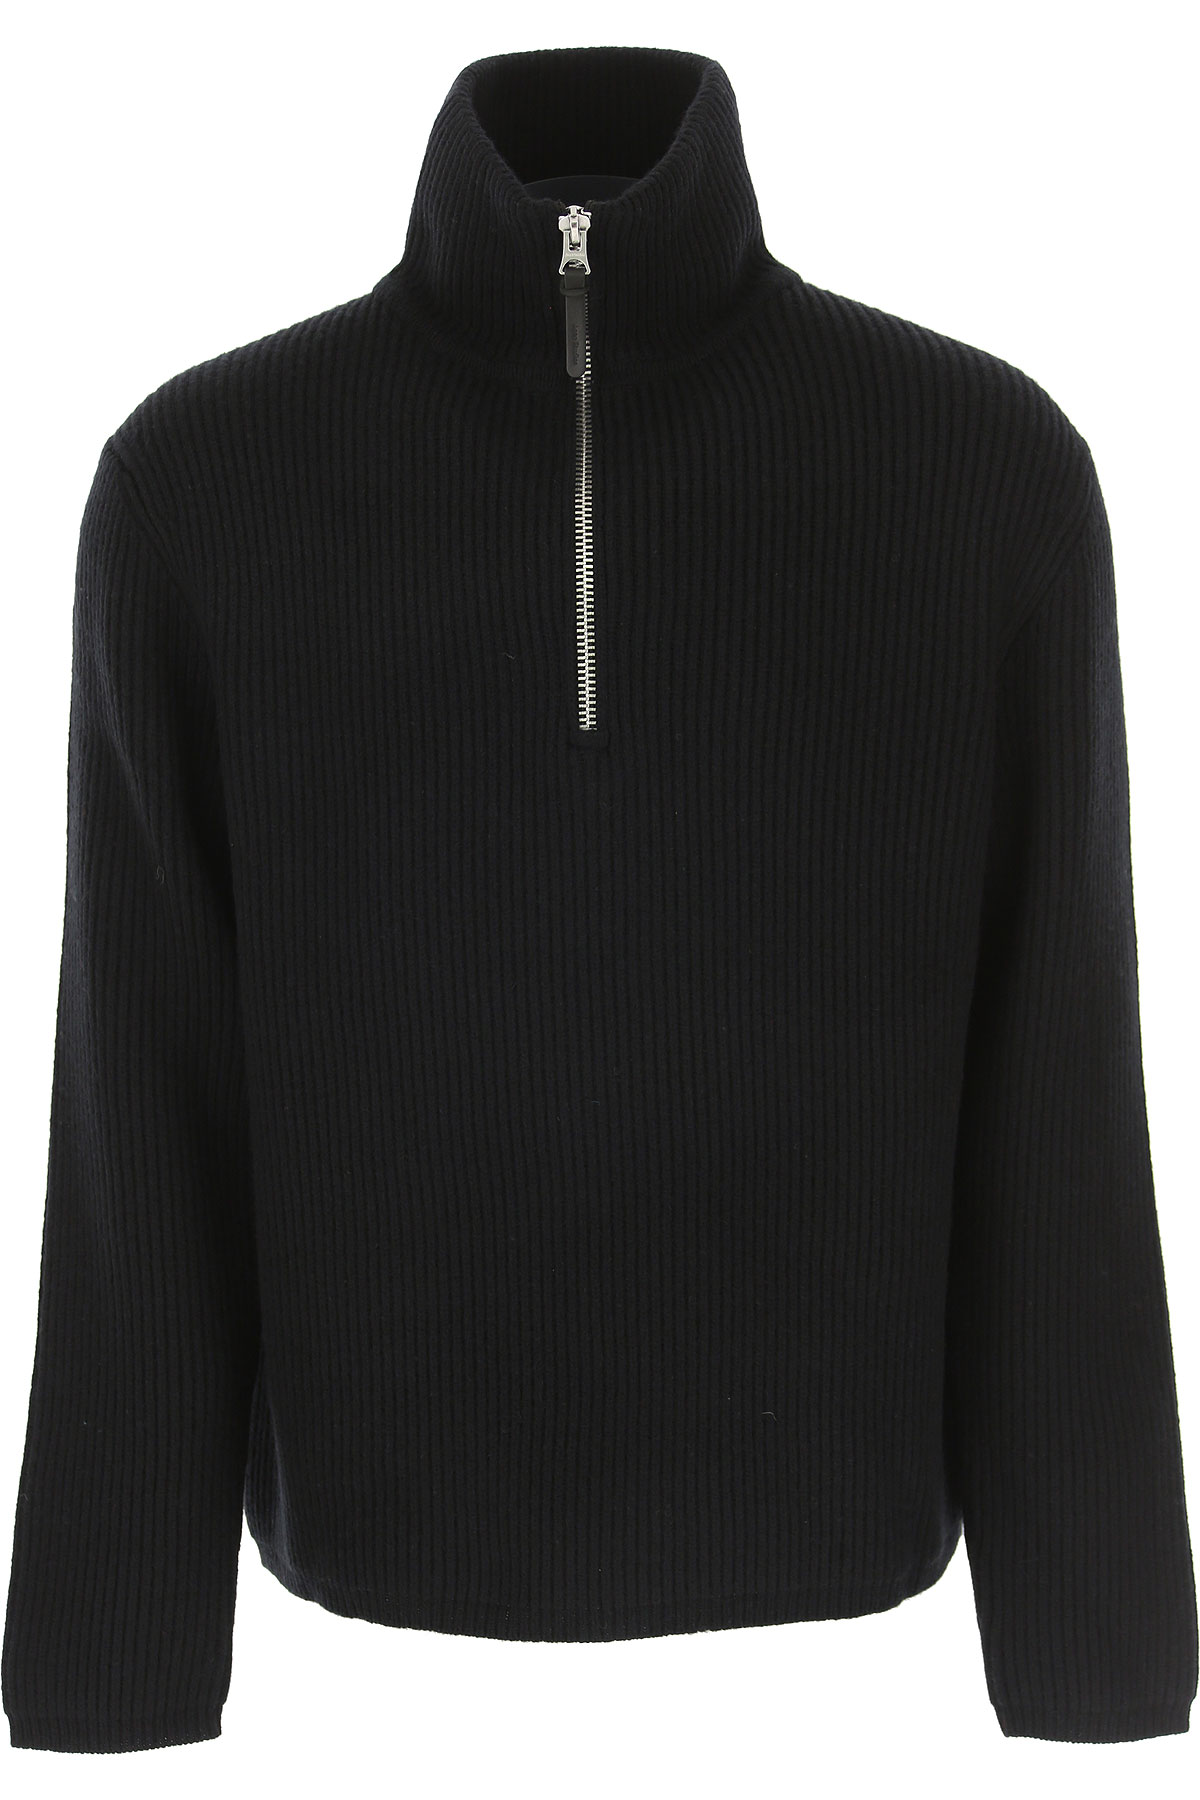 Image of Acne Studios Sweater for Men Jumper, Black, Wool, 2017, L M S